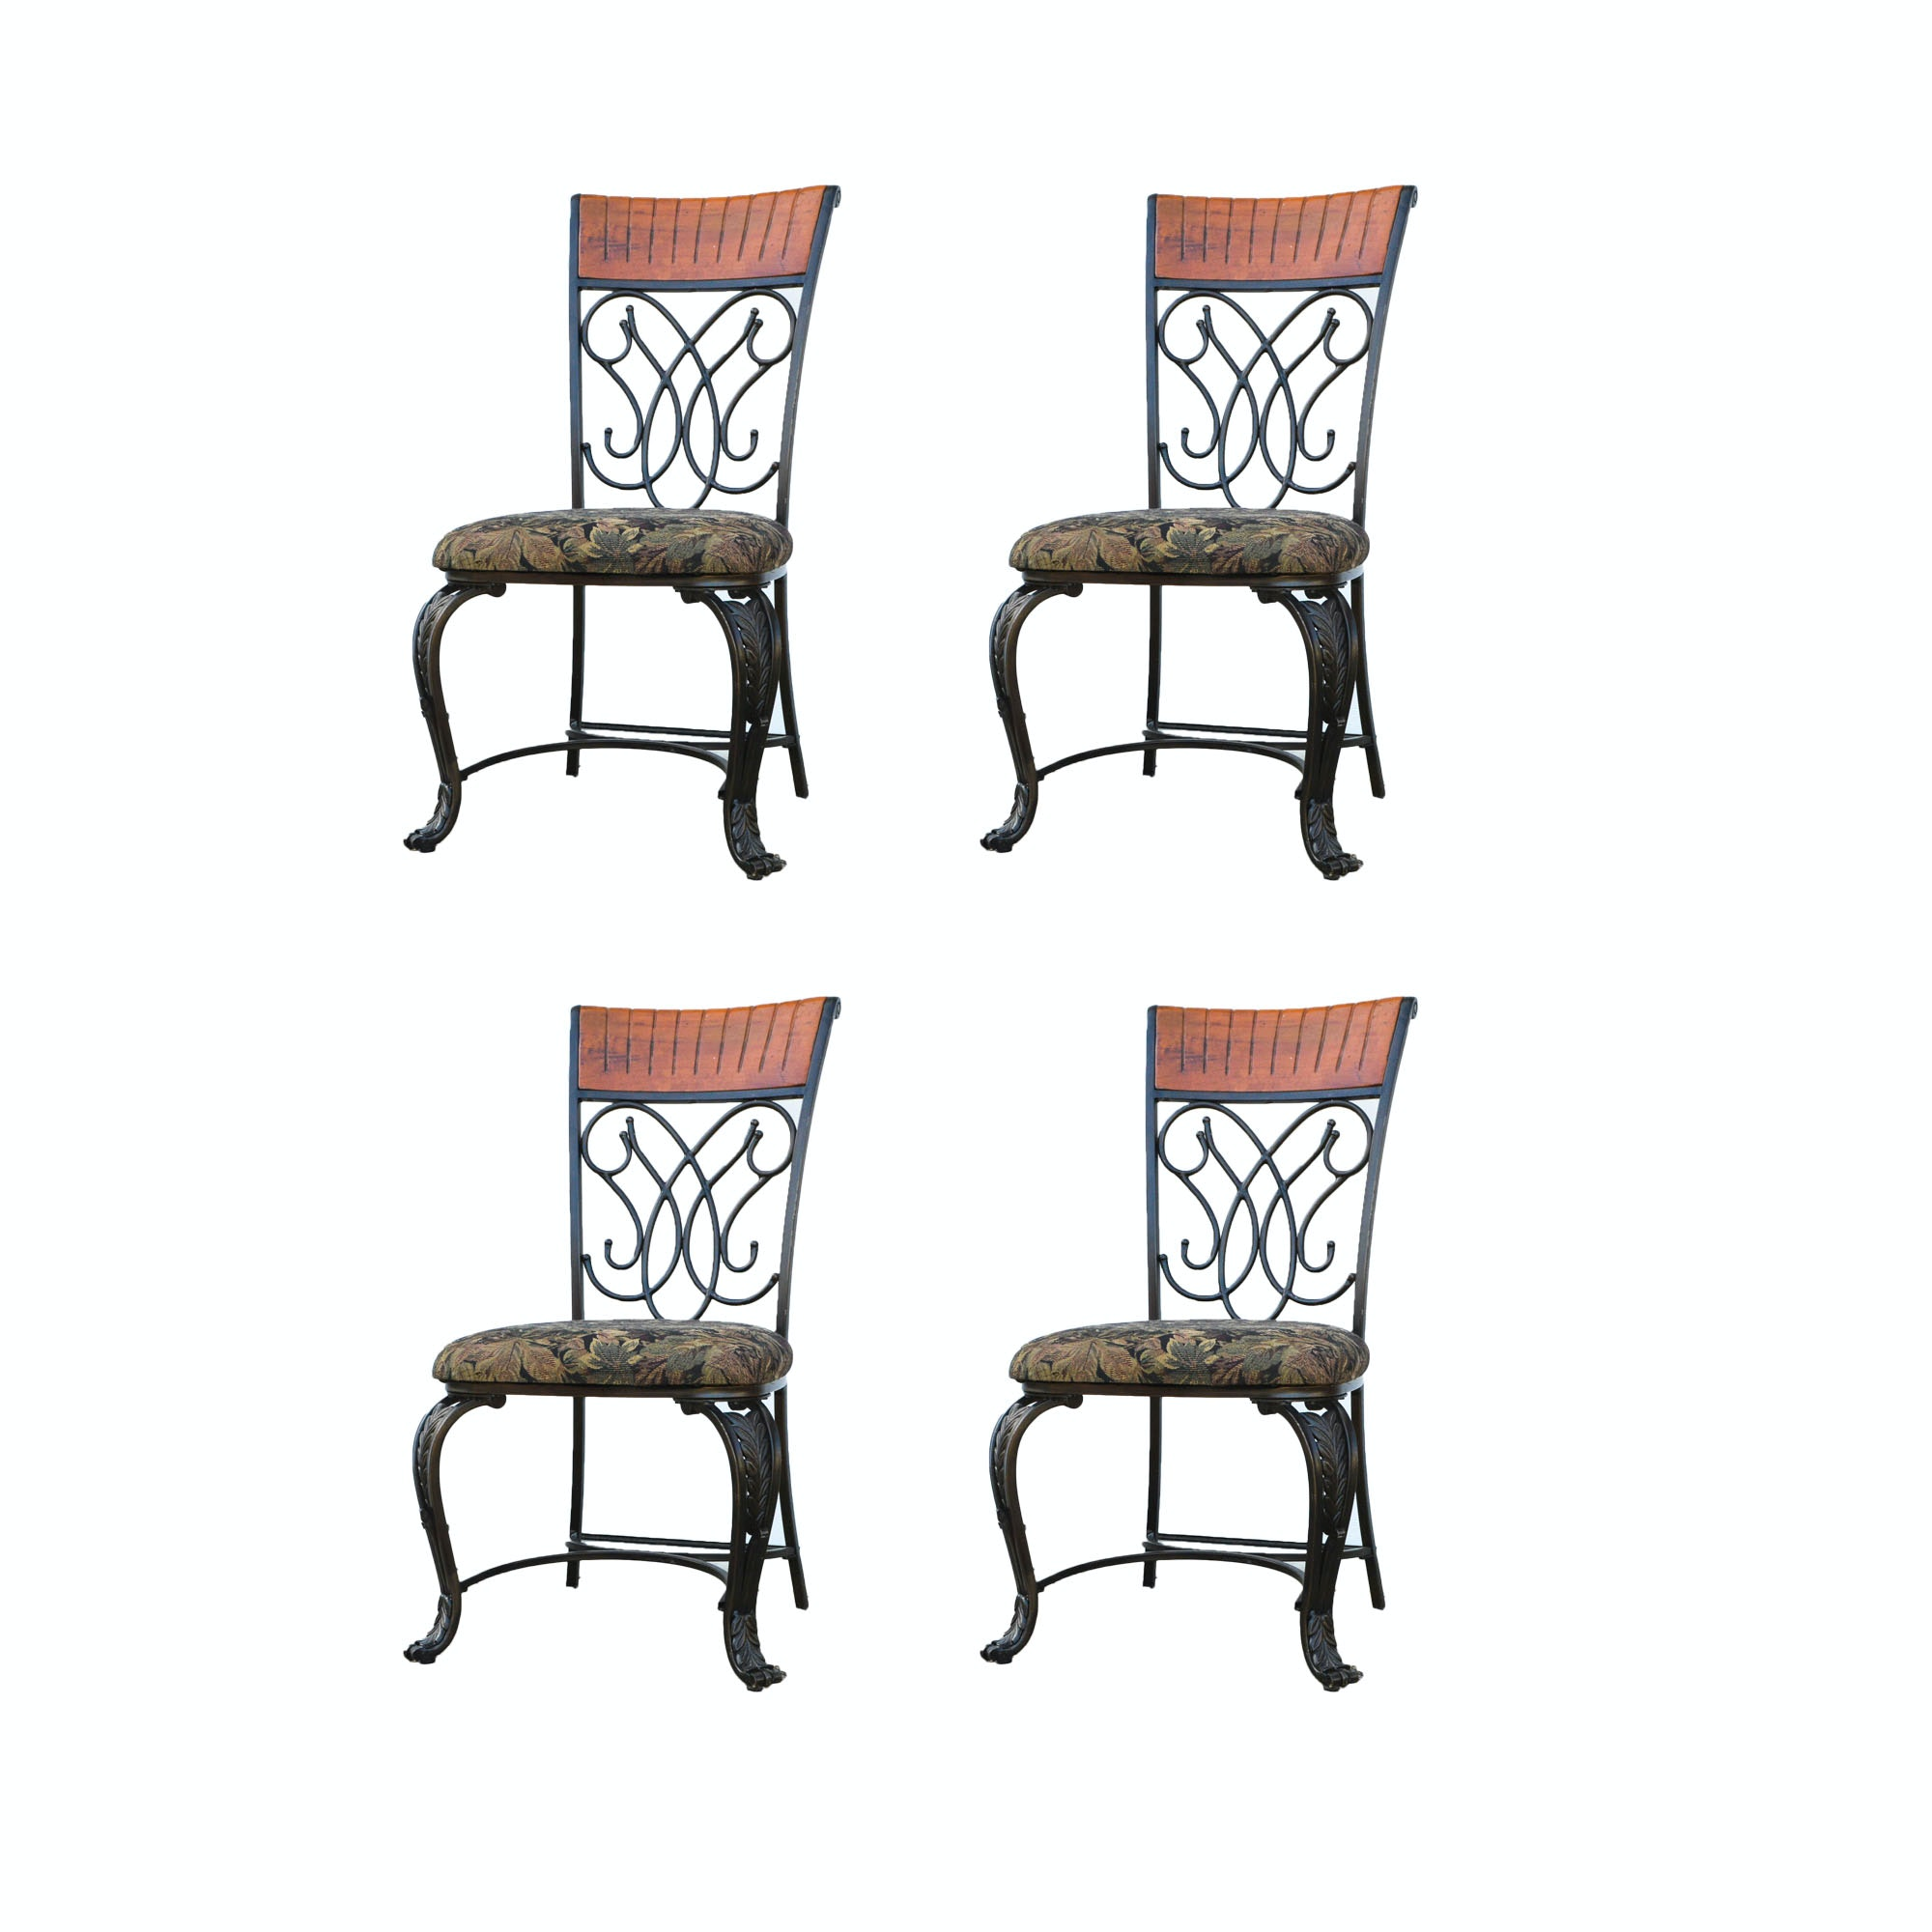 Set of Dining Chairs by Ashley Furniture